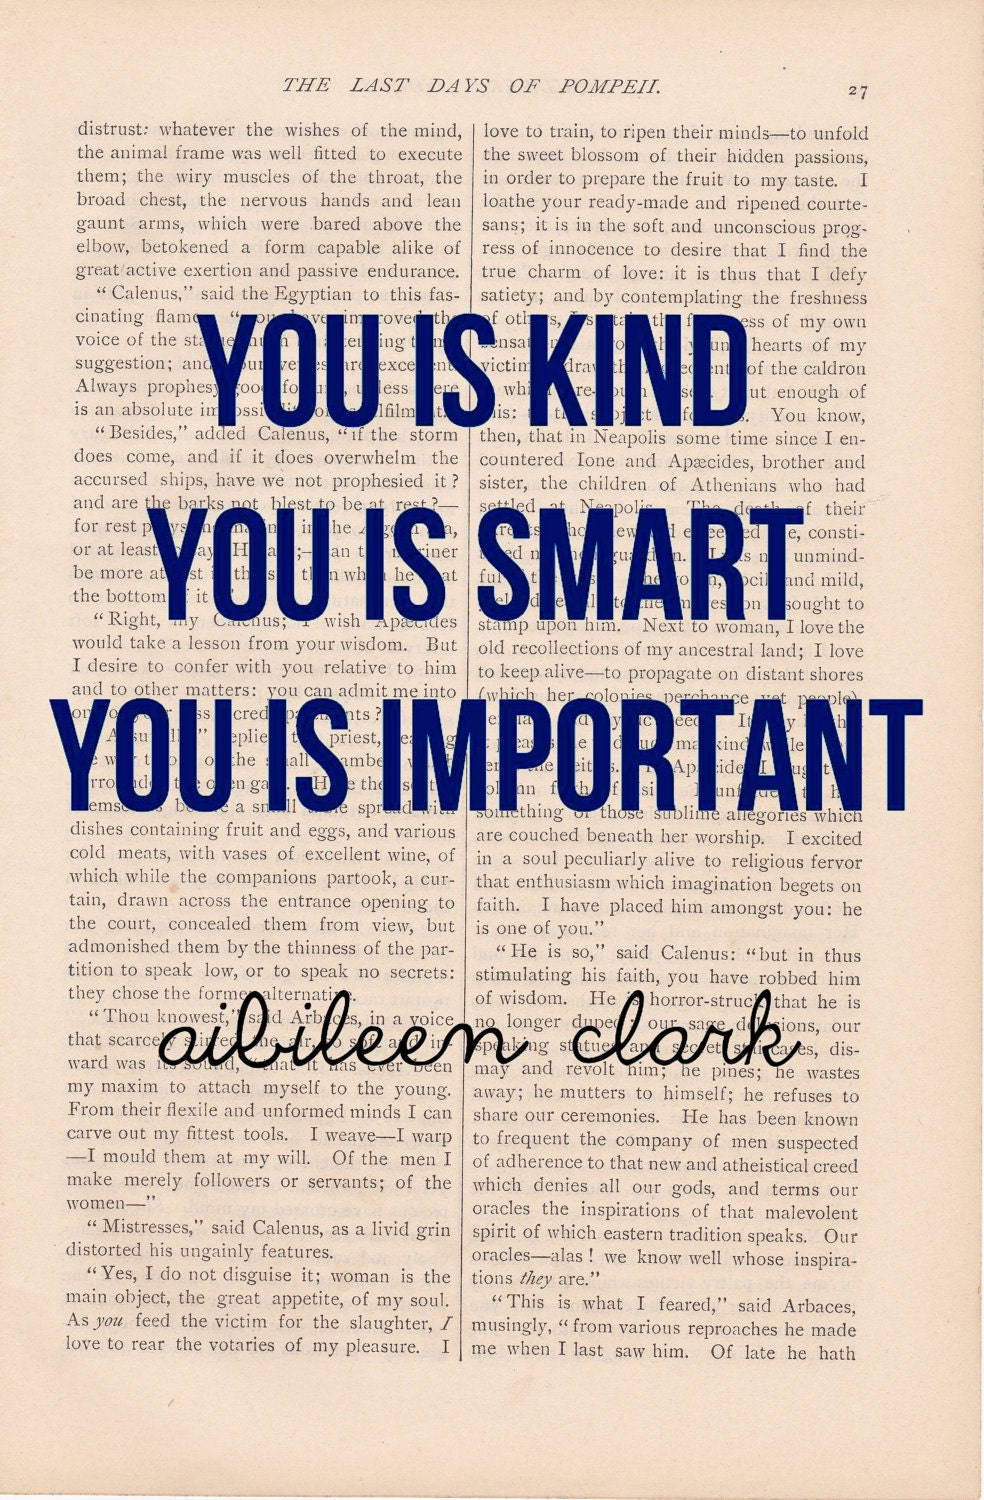 vintage dictionary page YOU IS KIND - The Help movie quote - vintage book page print - printed on vintage book page or page from the Help